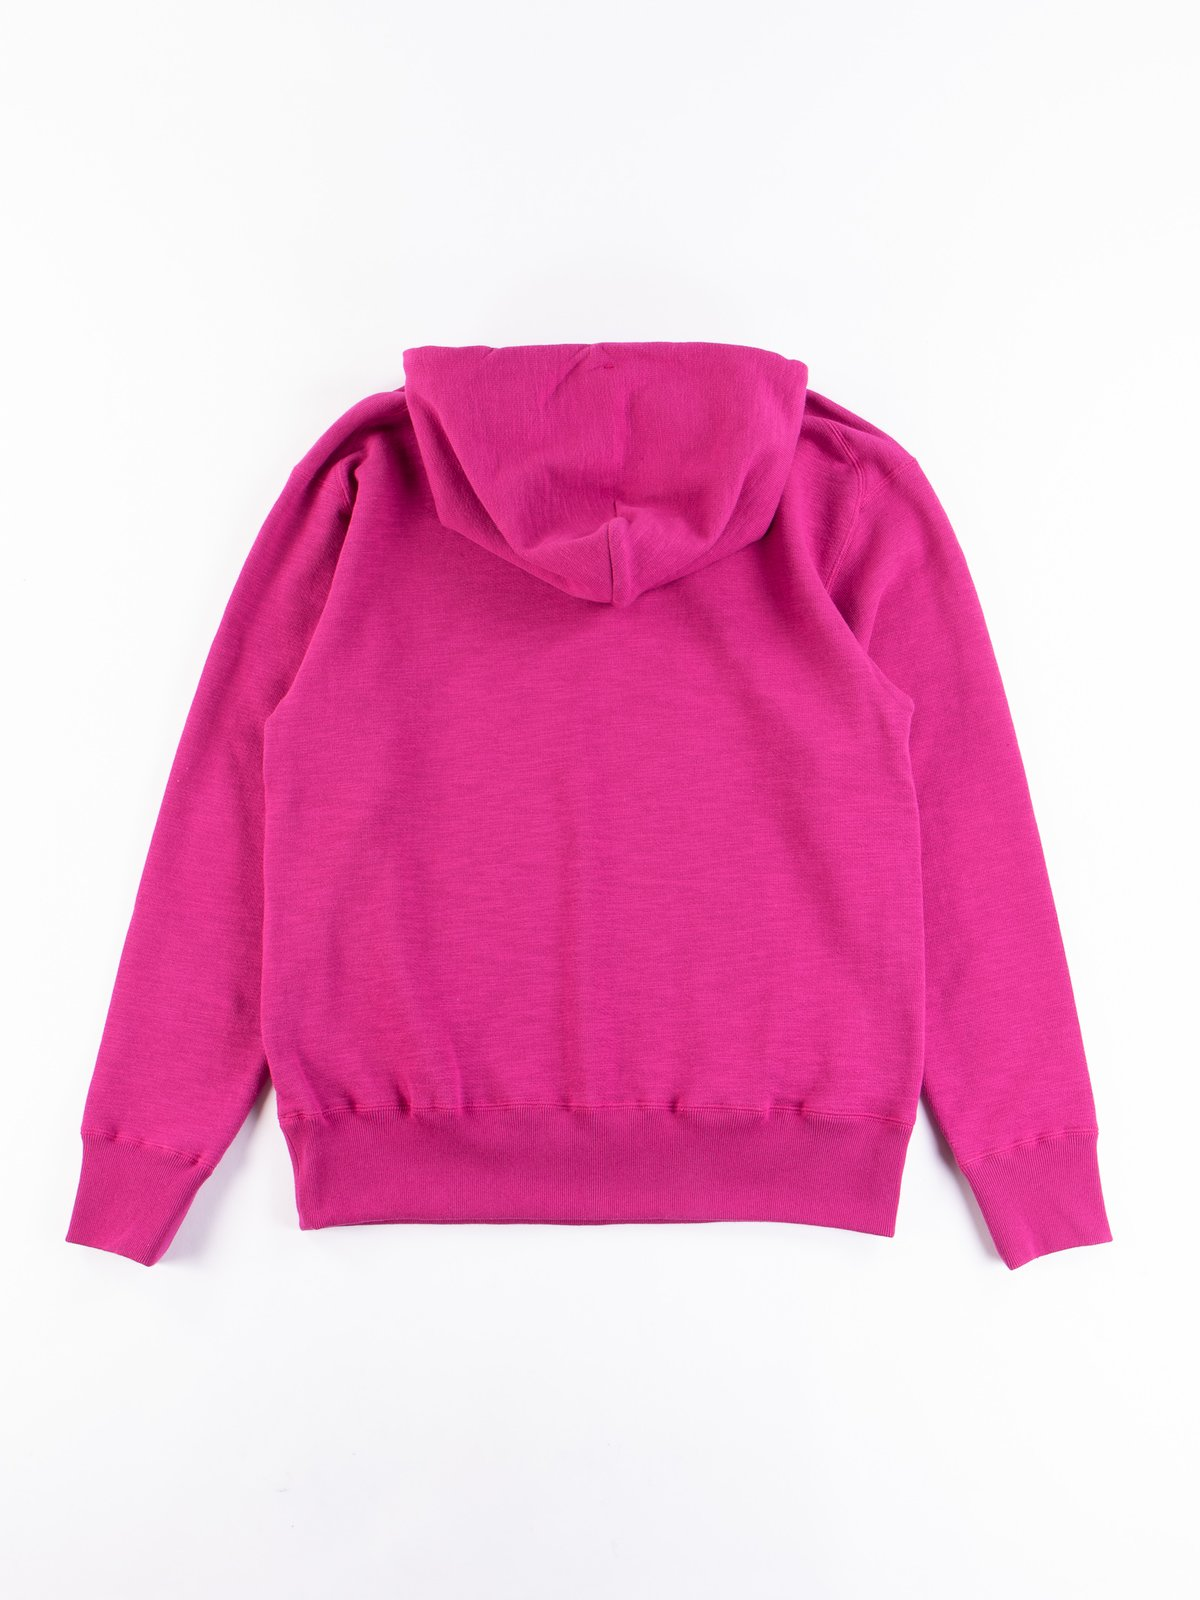 Ash Rose GG Sweat Pullover Parka - Image 5